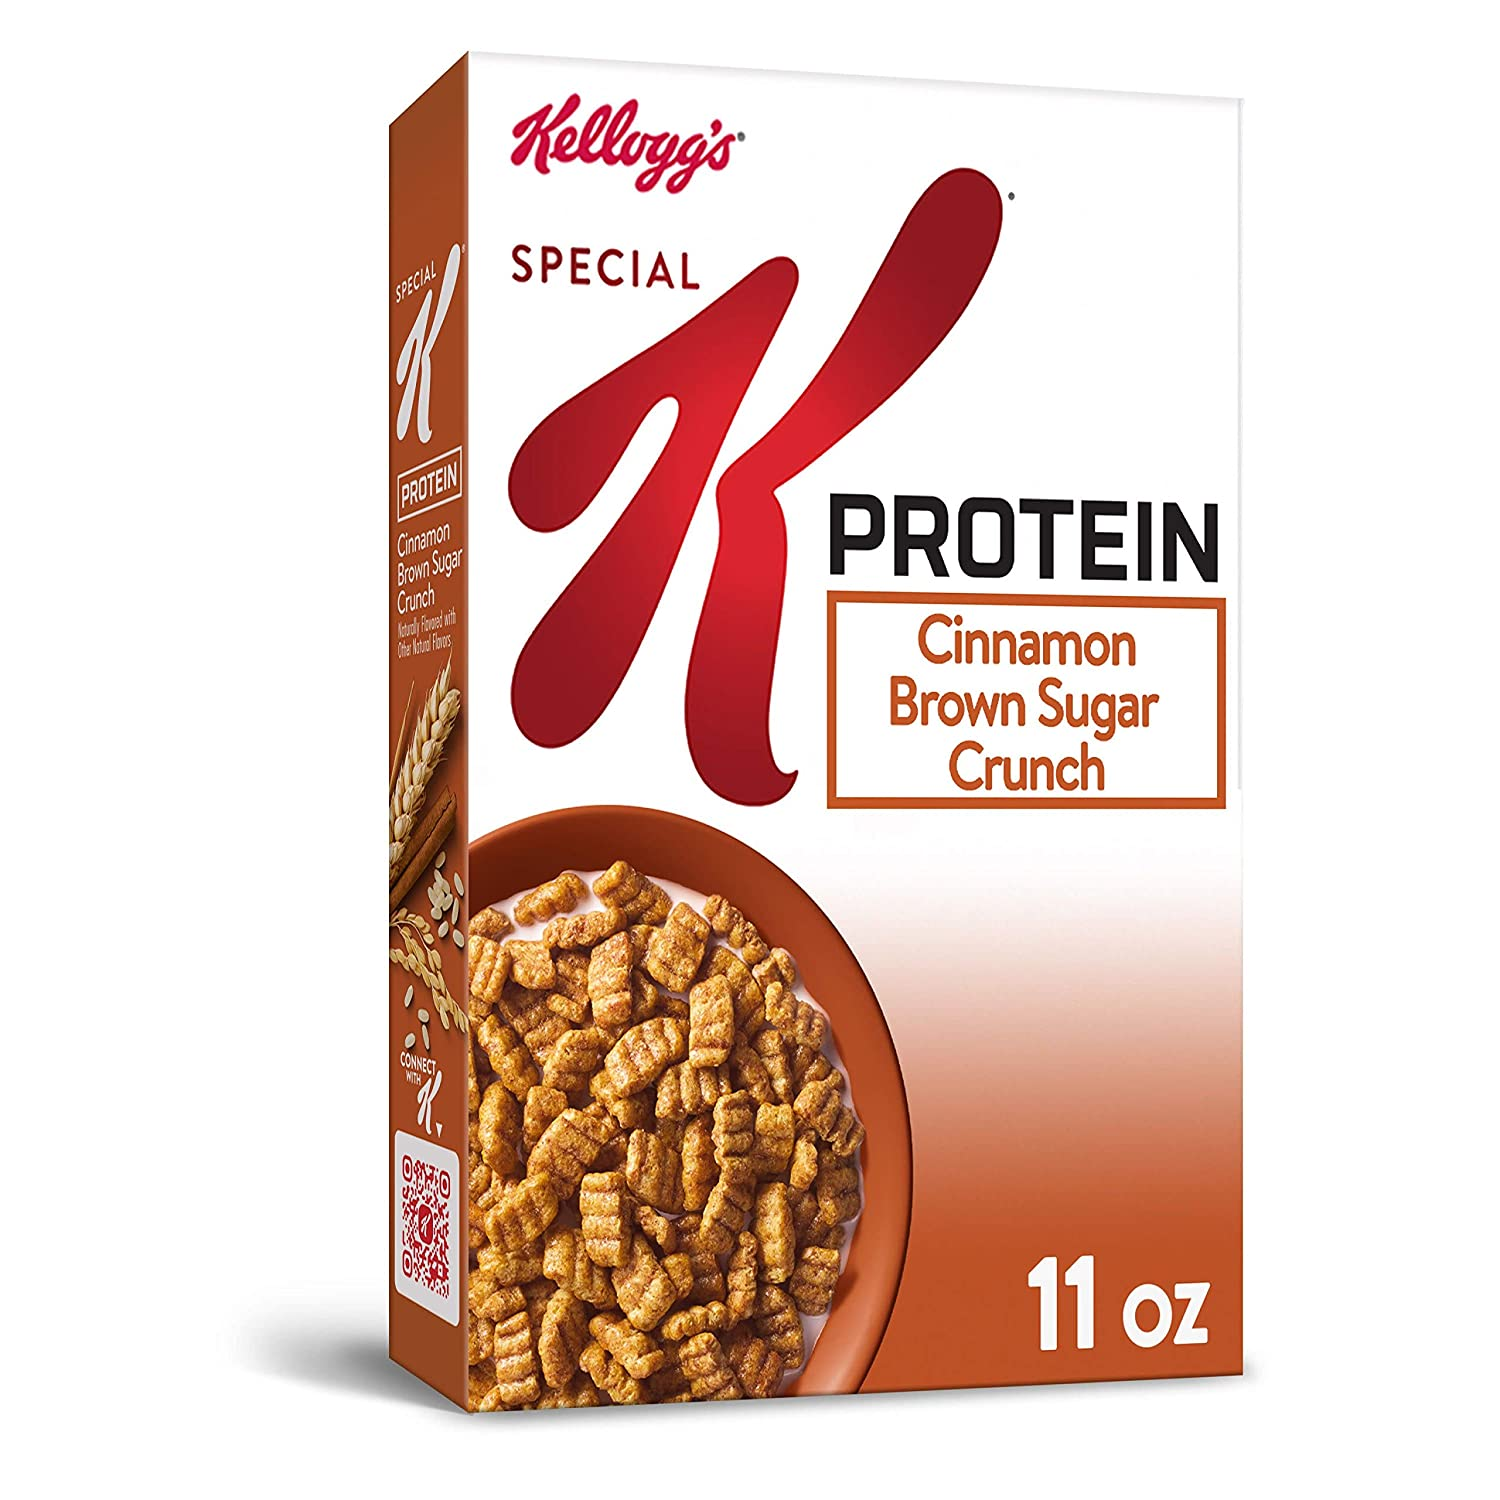 Kellogg's Special K Protein, Breakfast Cereal, Cinnamon Brown Sugar Crunch, Made with Complete Protein, 11oz Box